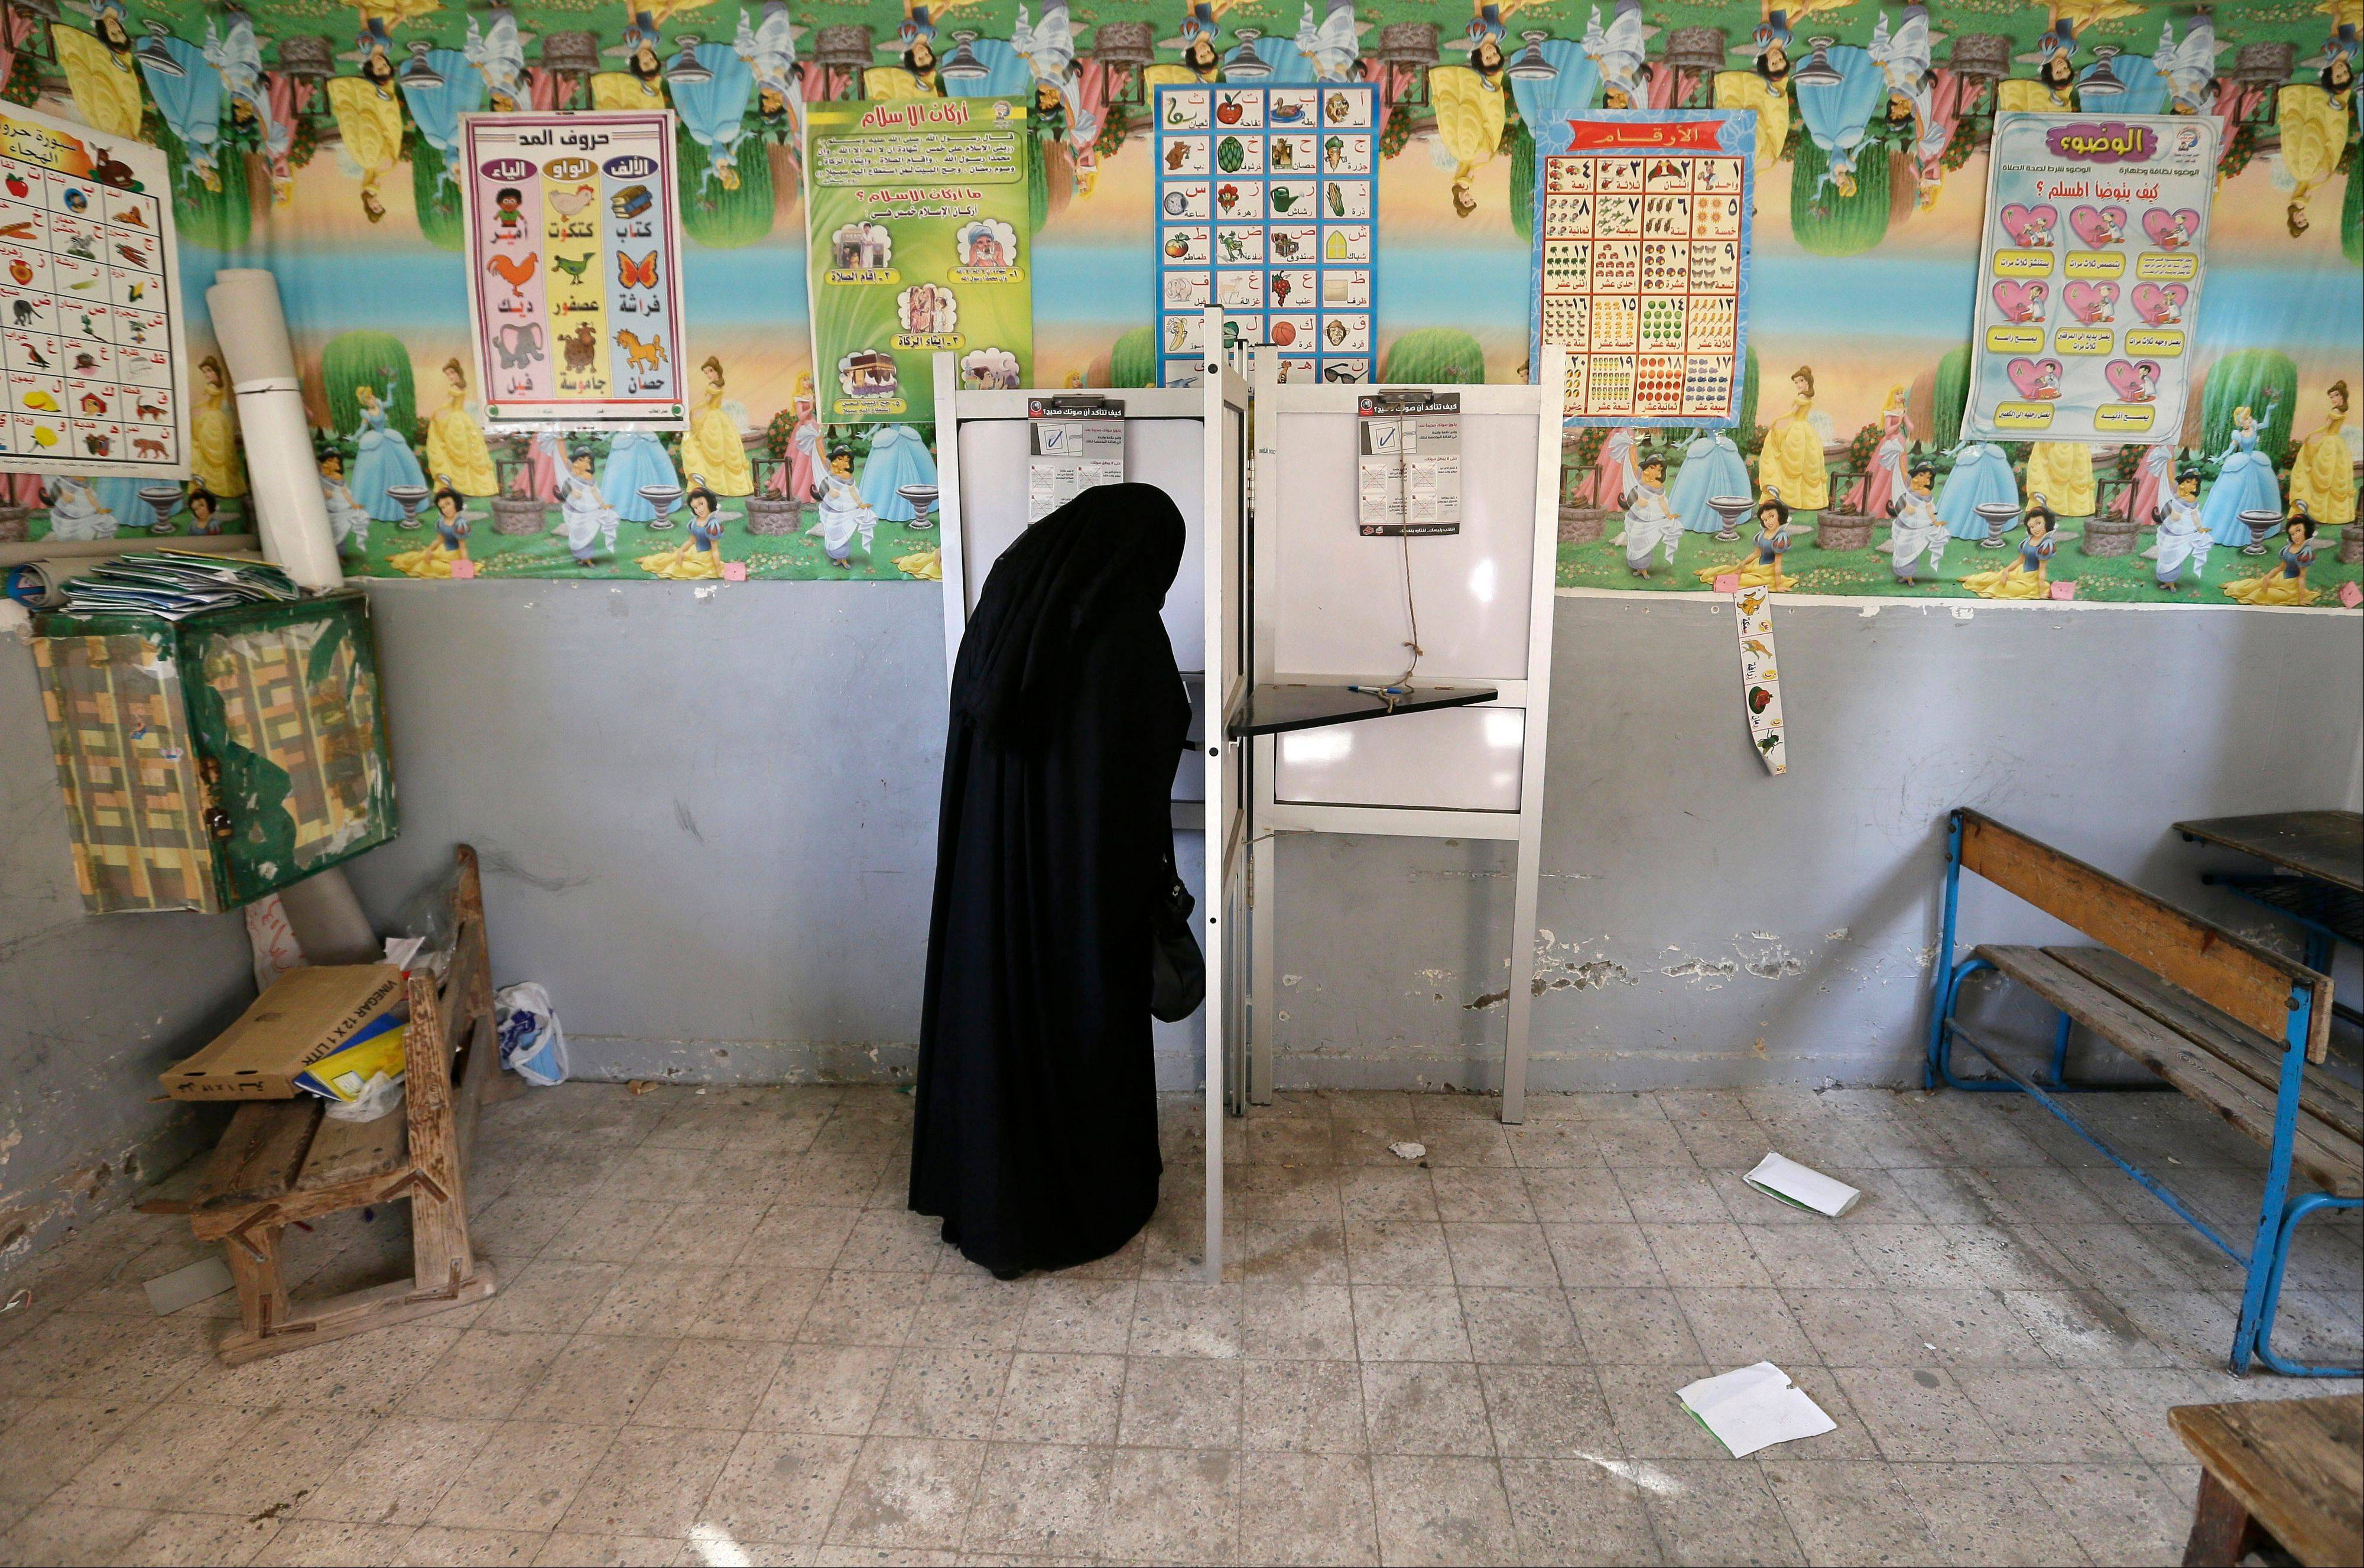 An Egyptian woman casts her vote at polling center Saturday during a referendum on a disputed constitution.